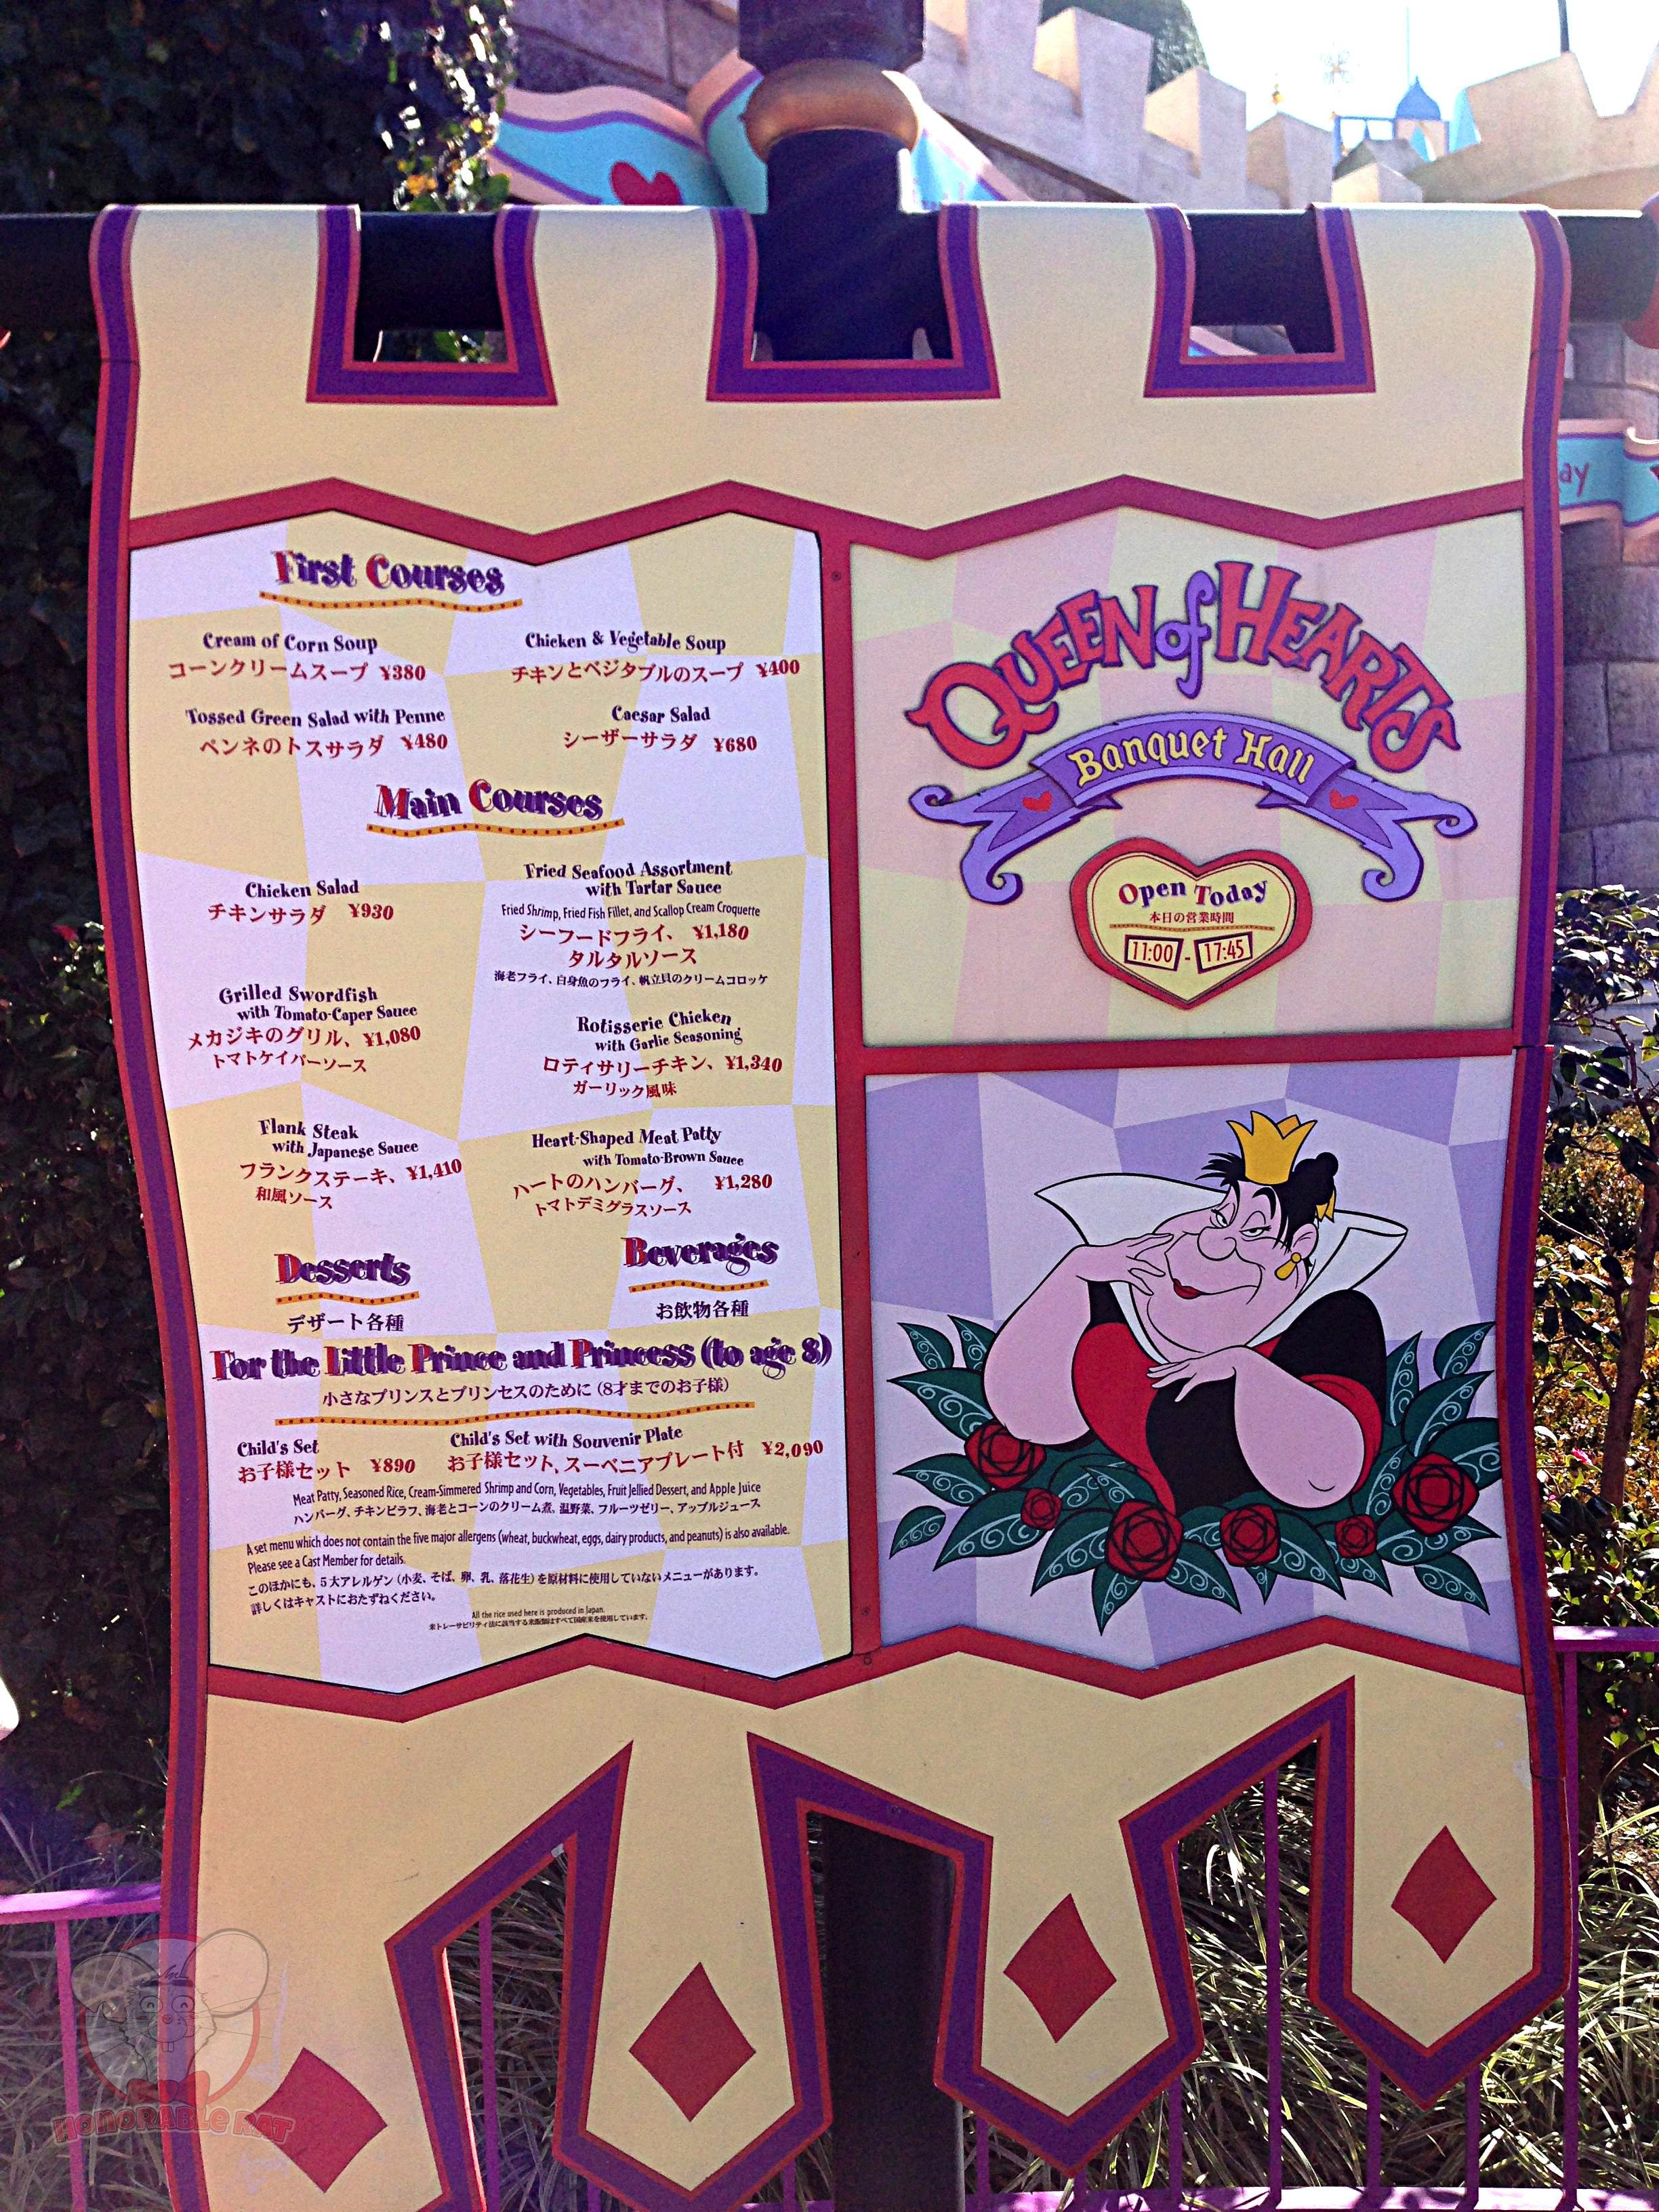 Menu by the entrance